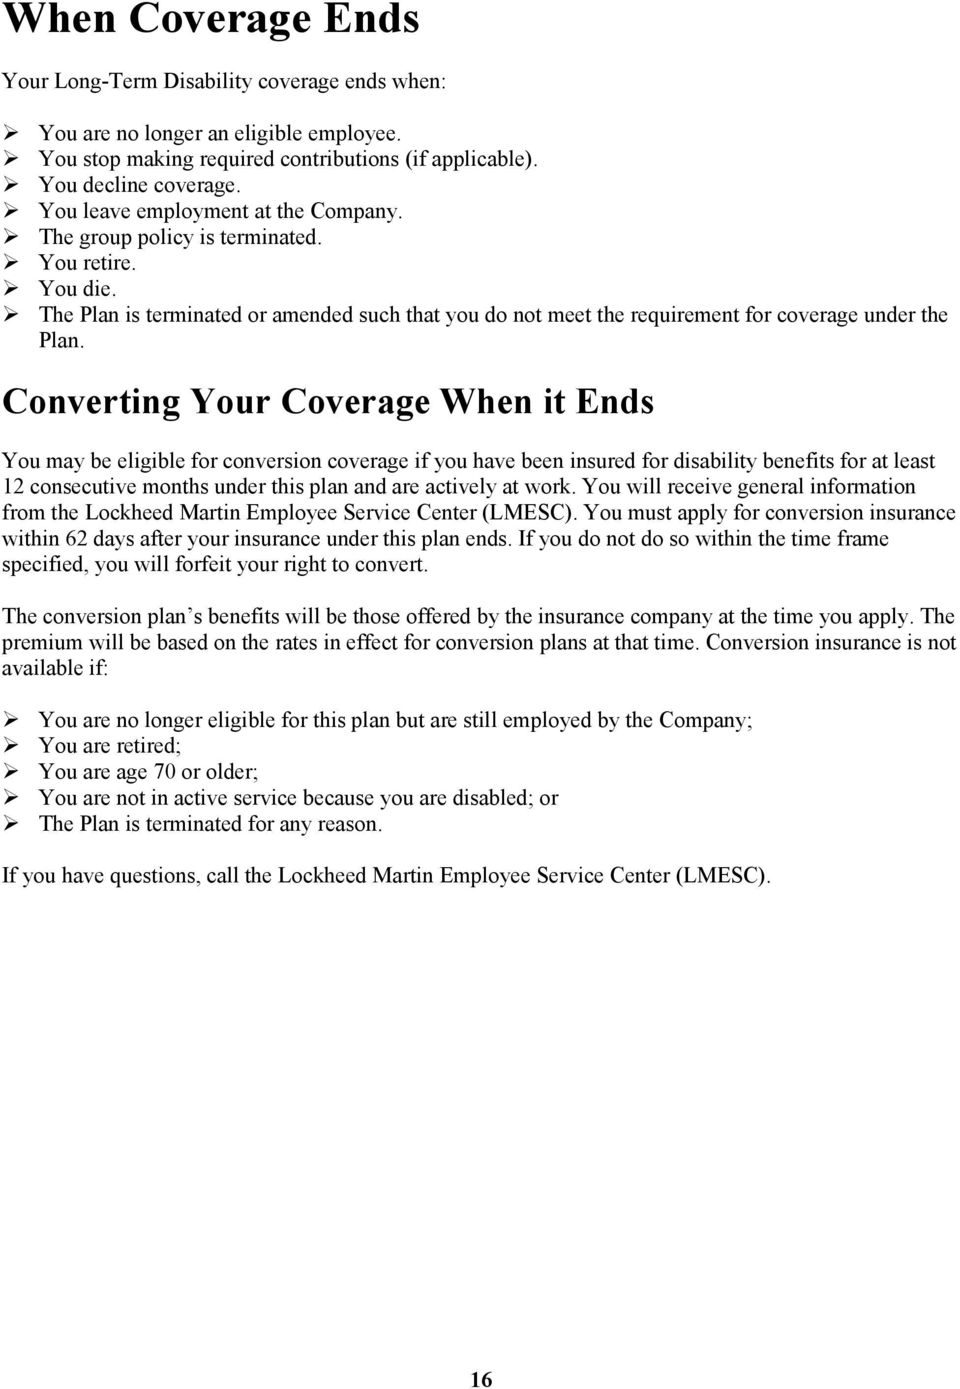 Converting Your Coverage When it Ends You may be eligible for conversion coverage if you have been insured for disability benefits for at least 12 consecutive months under this plan and are actively